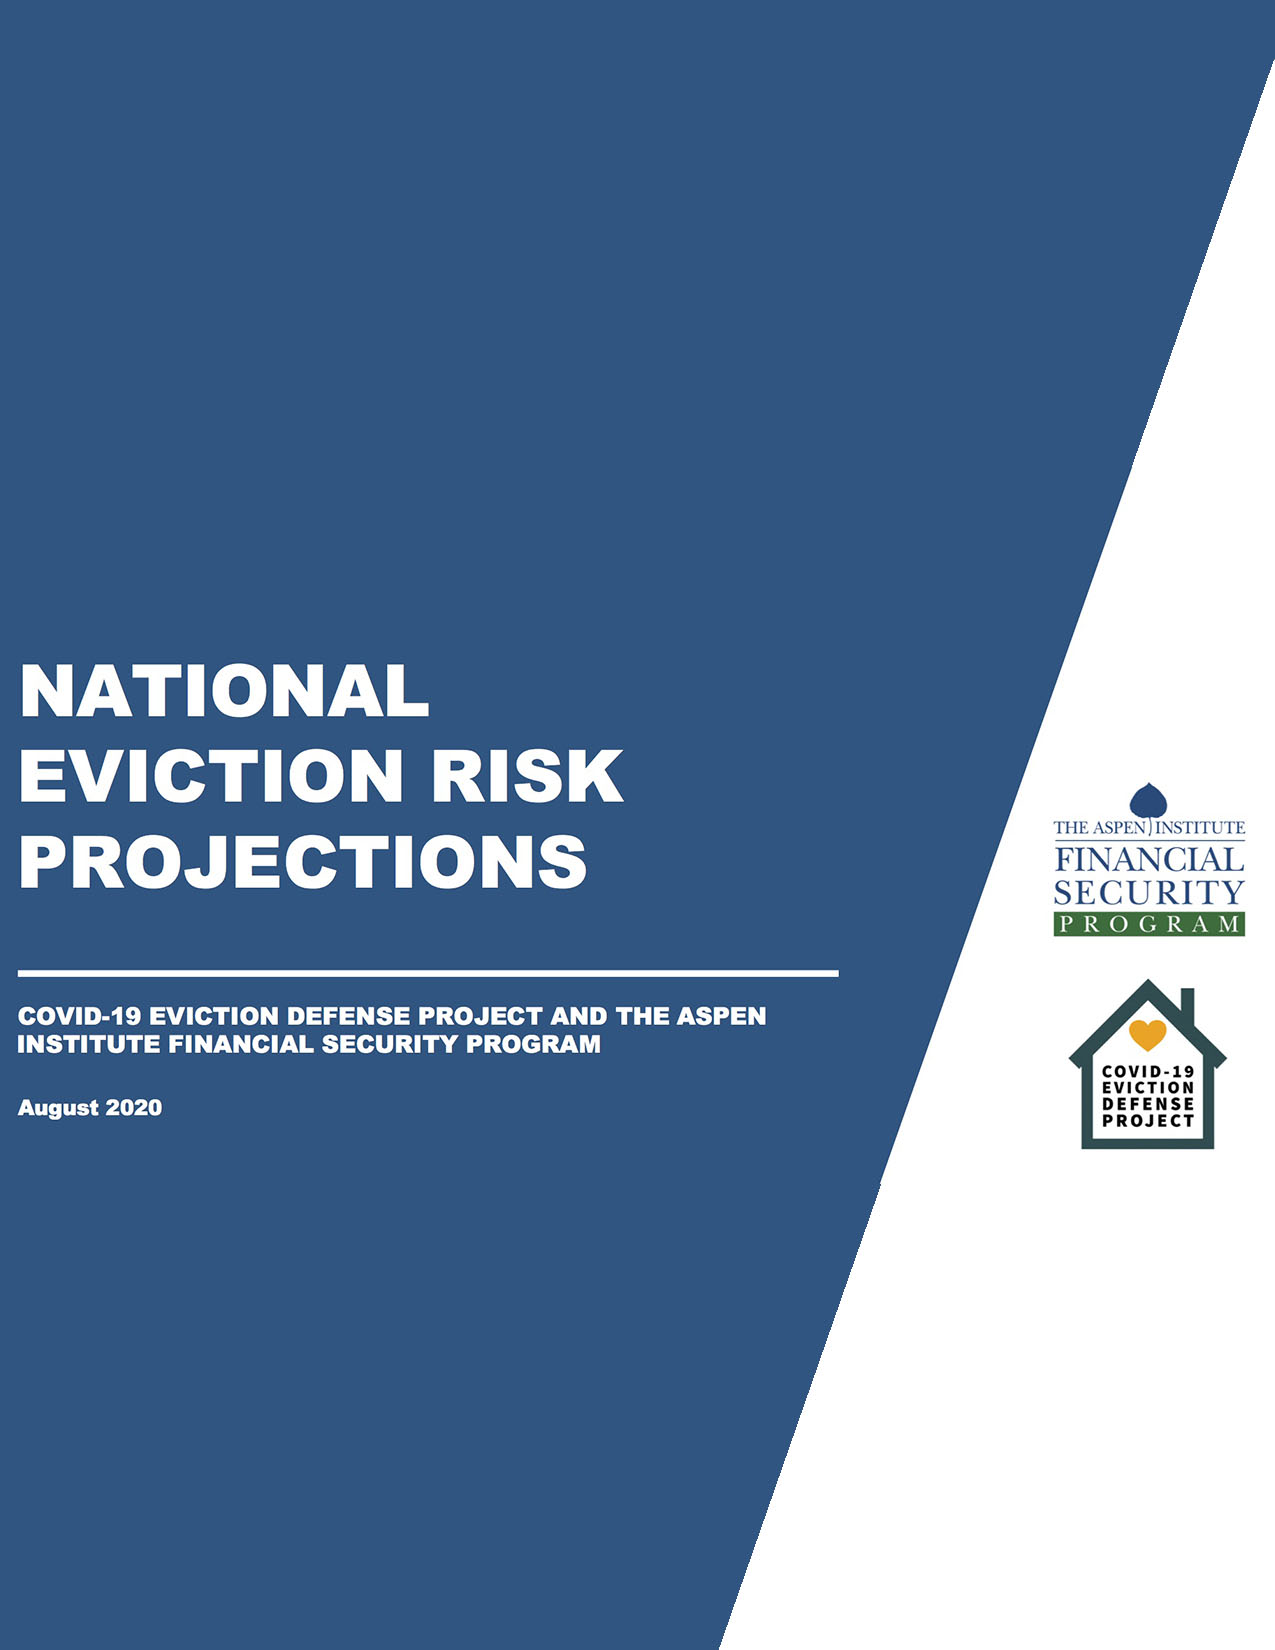 National Eviction Risk Projections